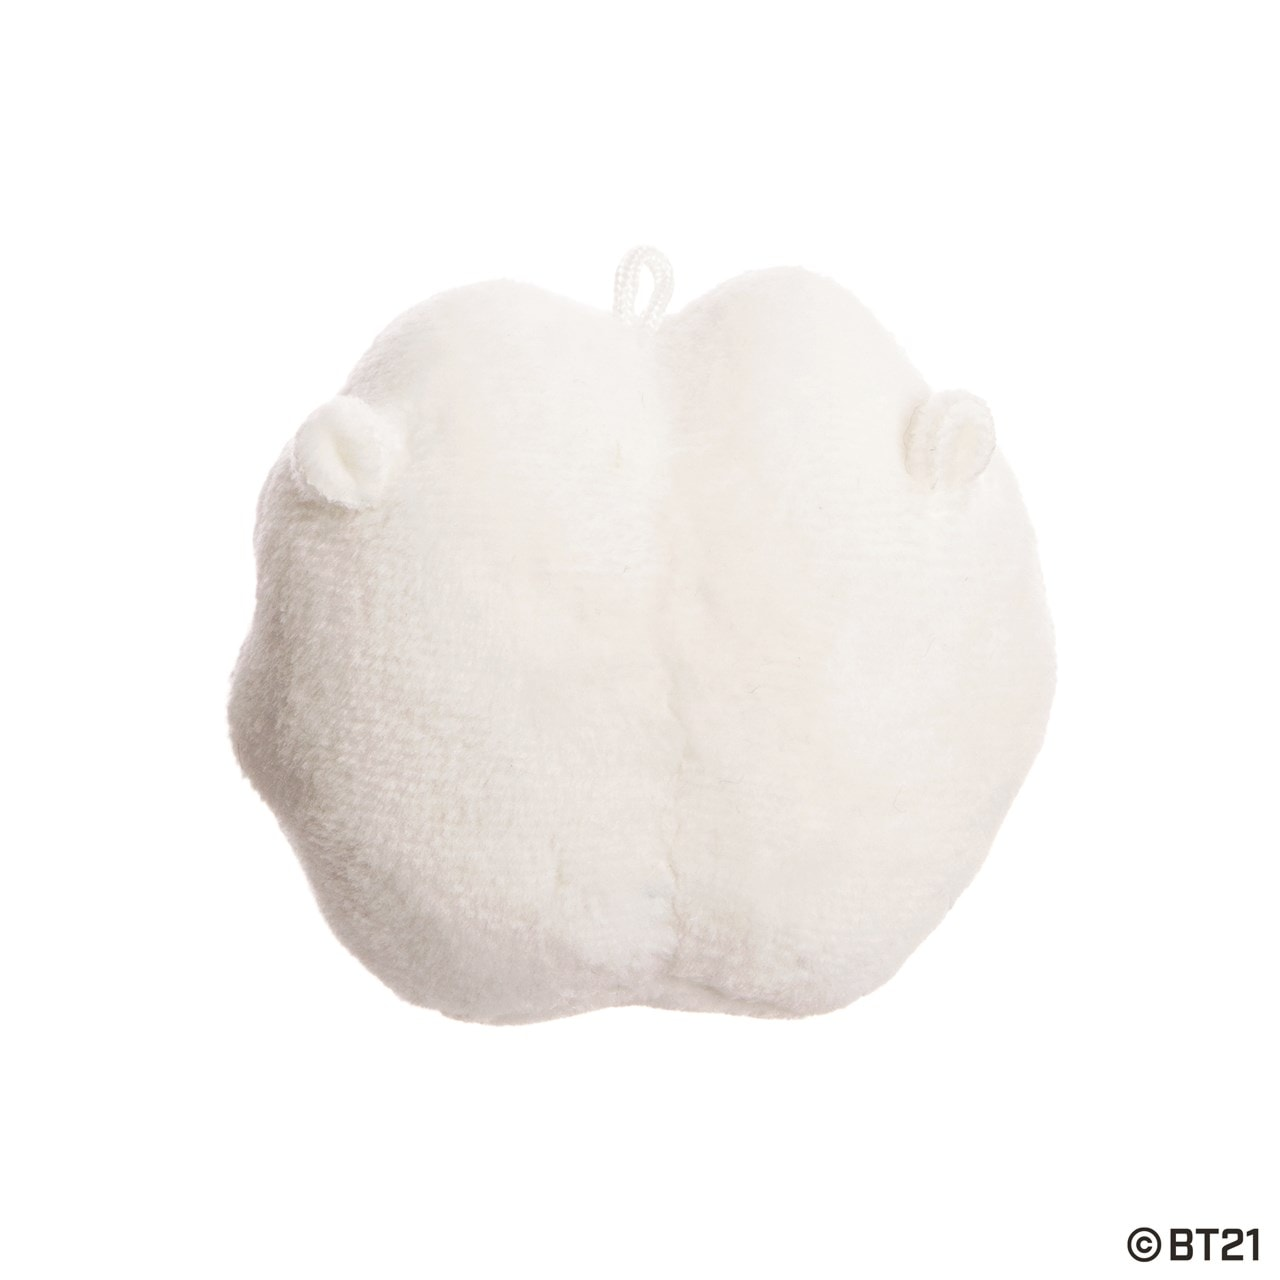 RJ Baby Pong Pong: BT21 Soft Toy - 2